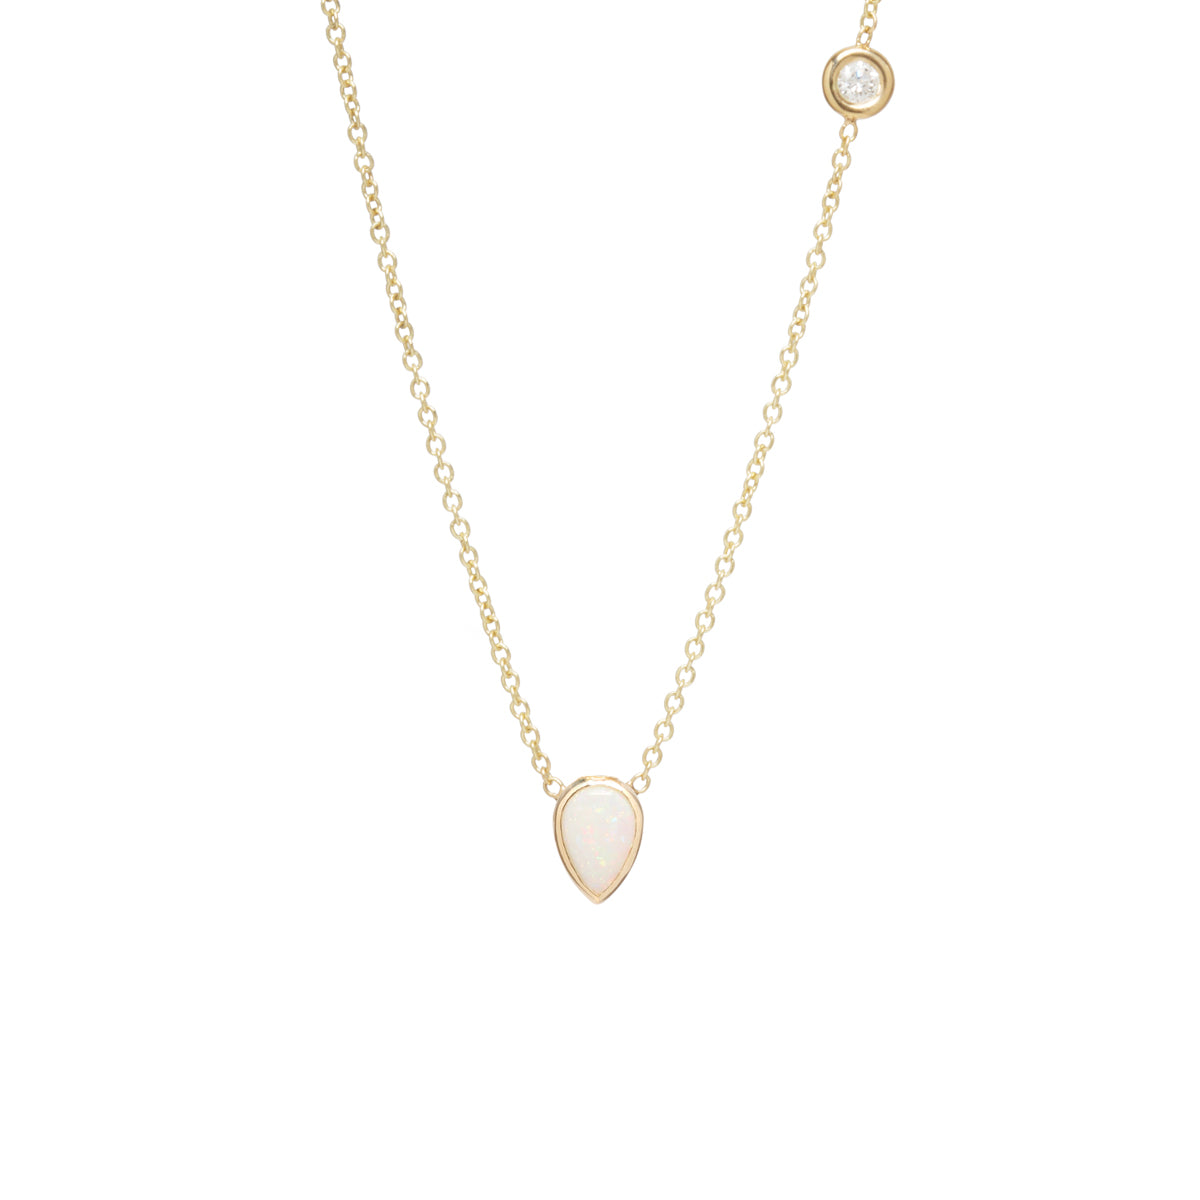 14k opal & floating diamond necklace